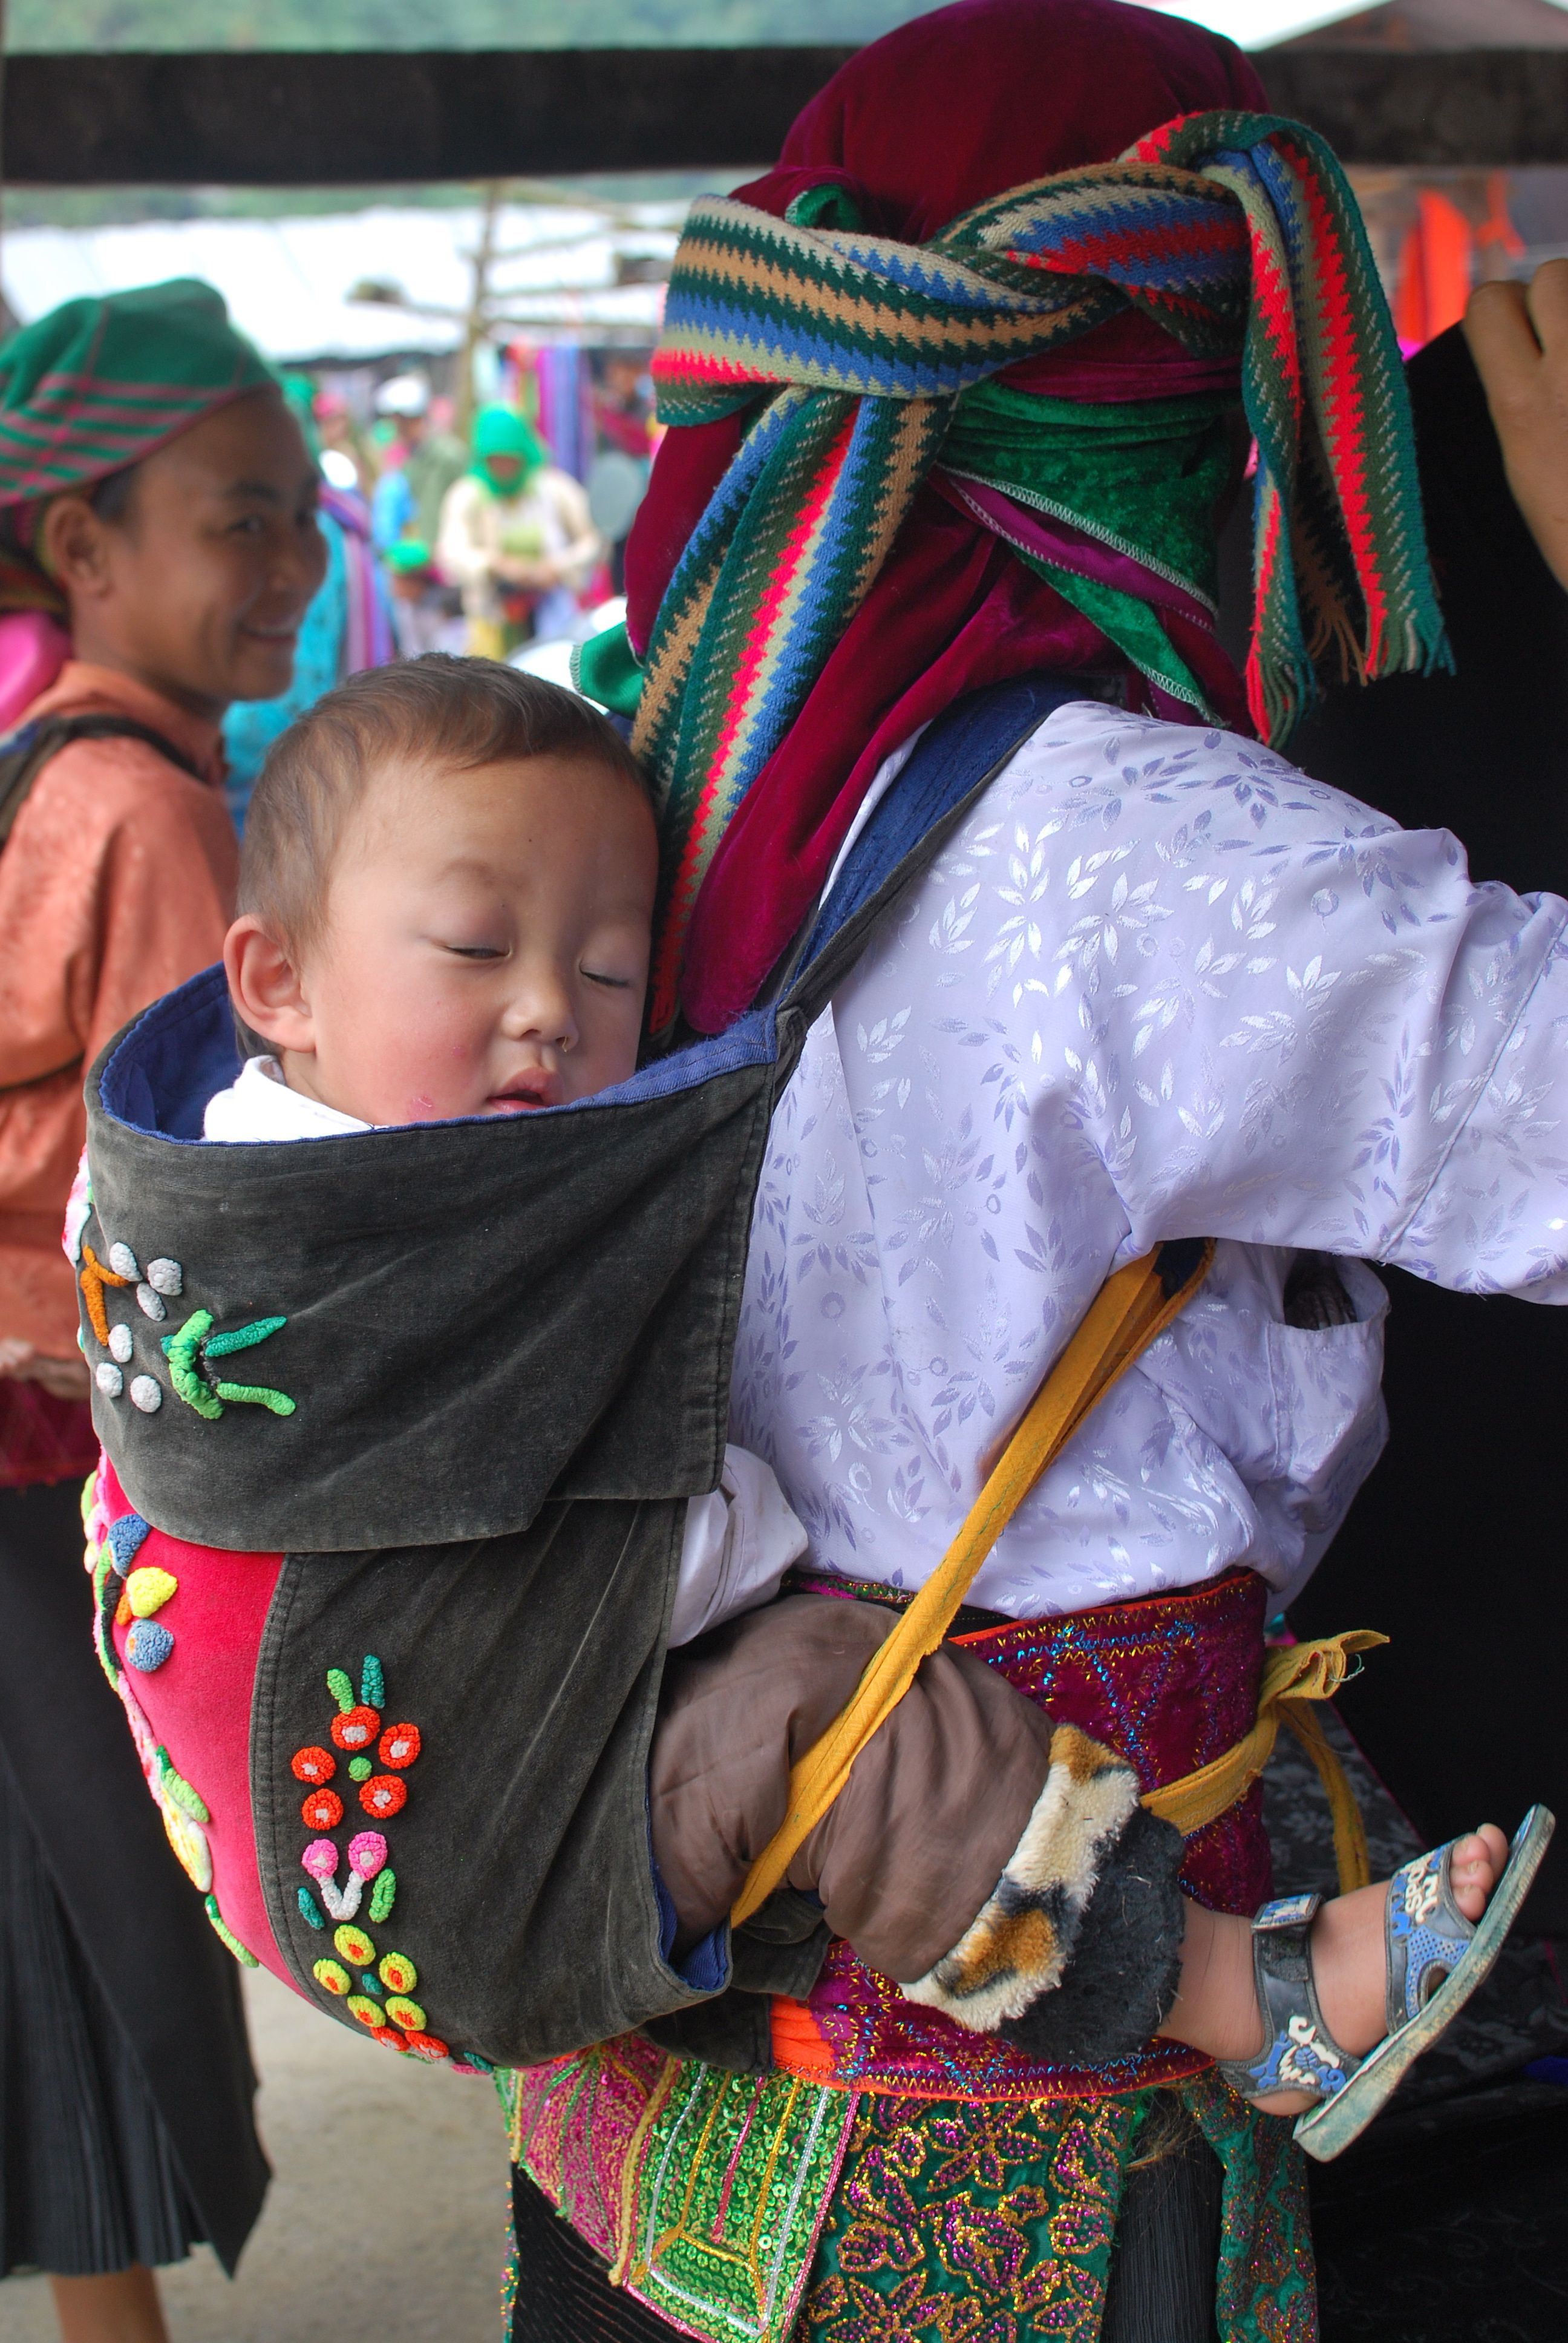 Hmong Mother Her Son The Market Babywearing Pinterest Sons